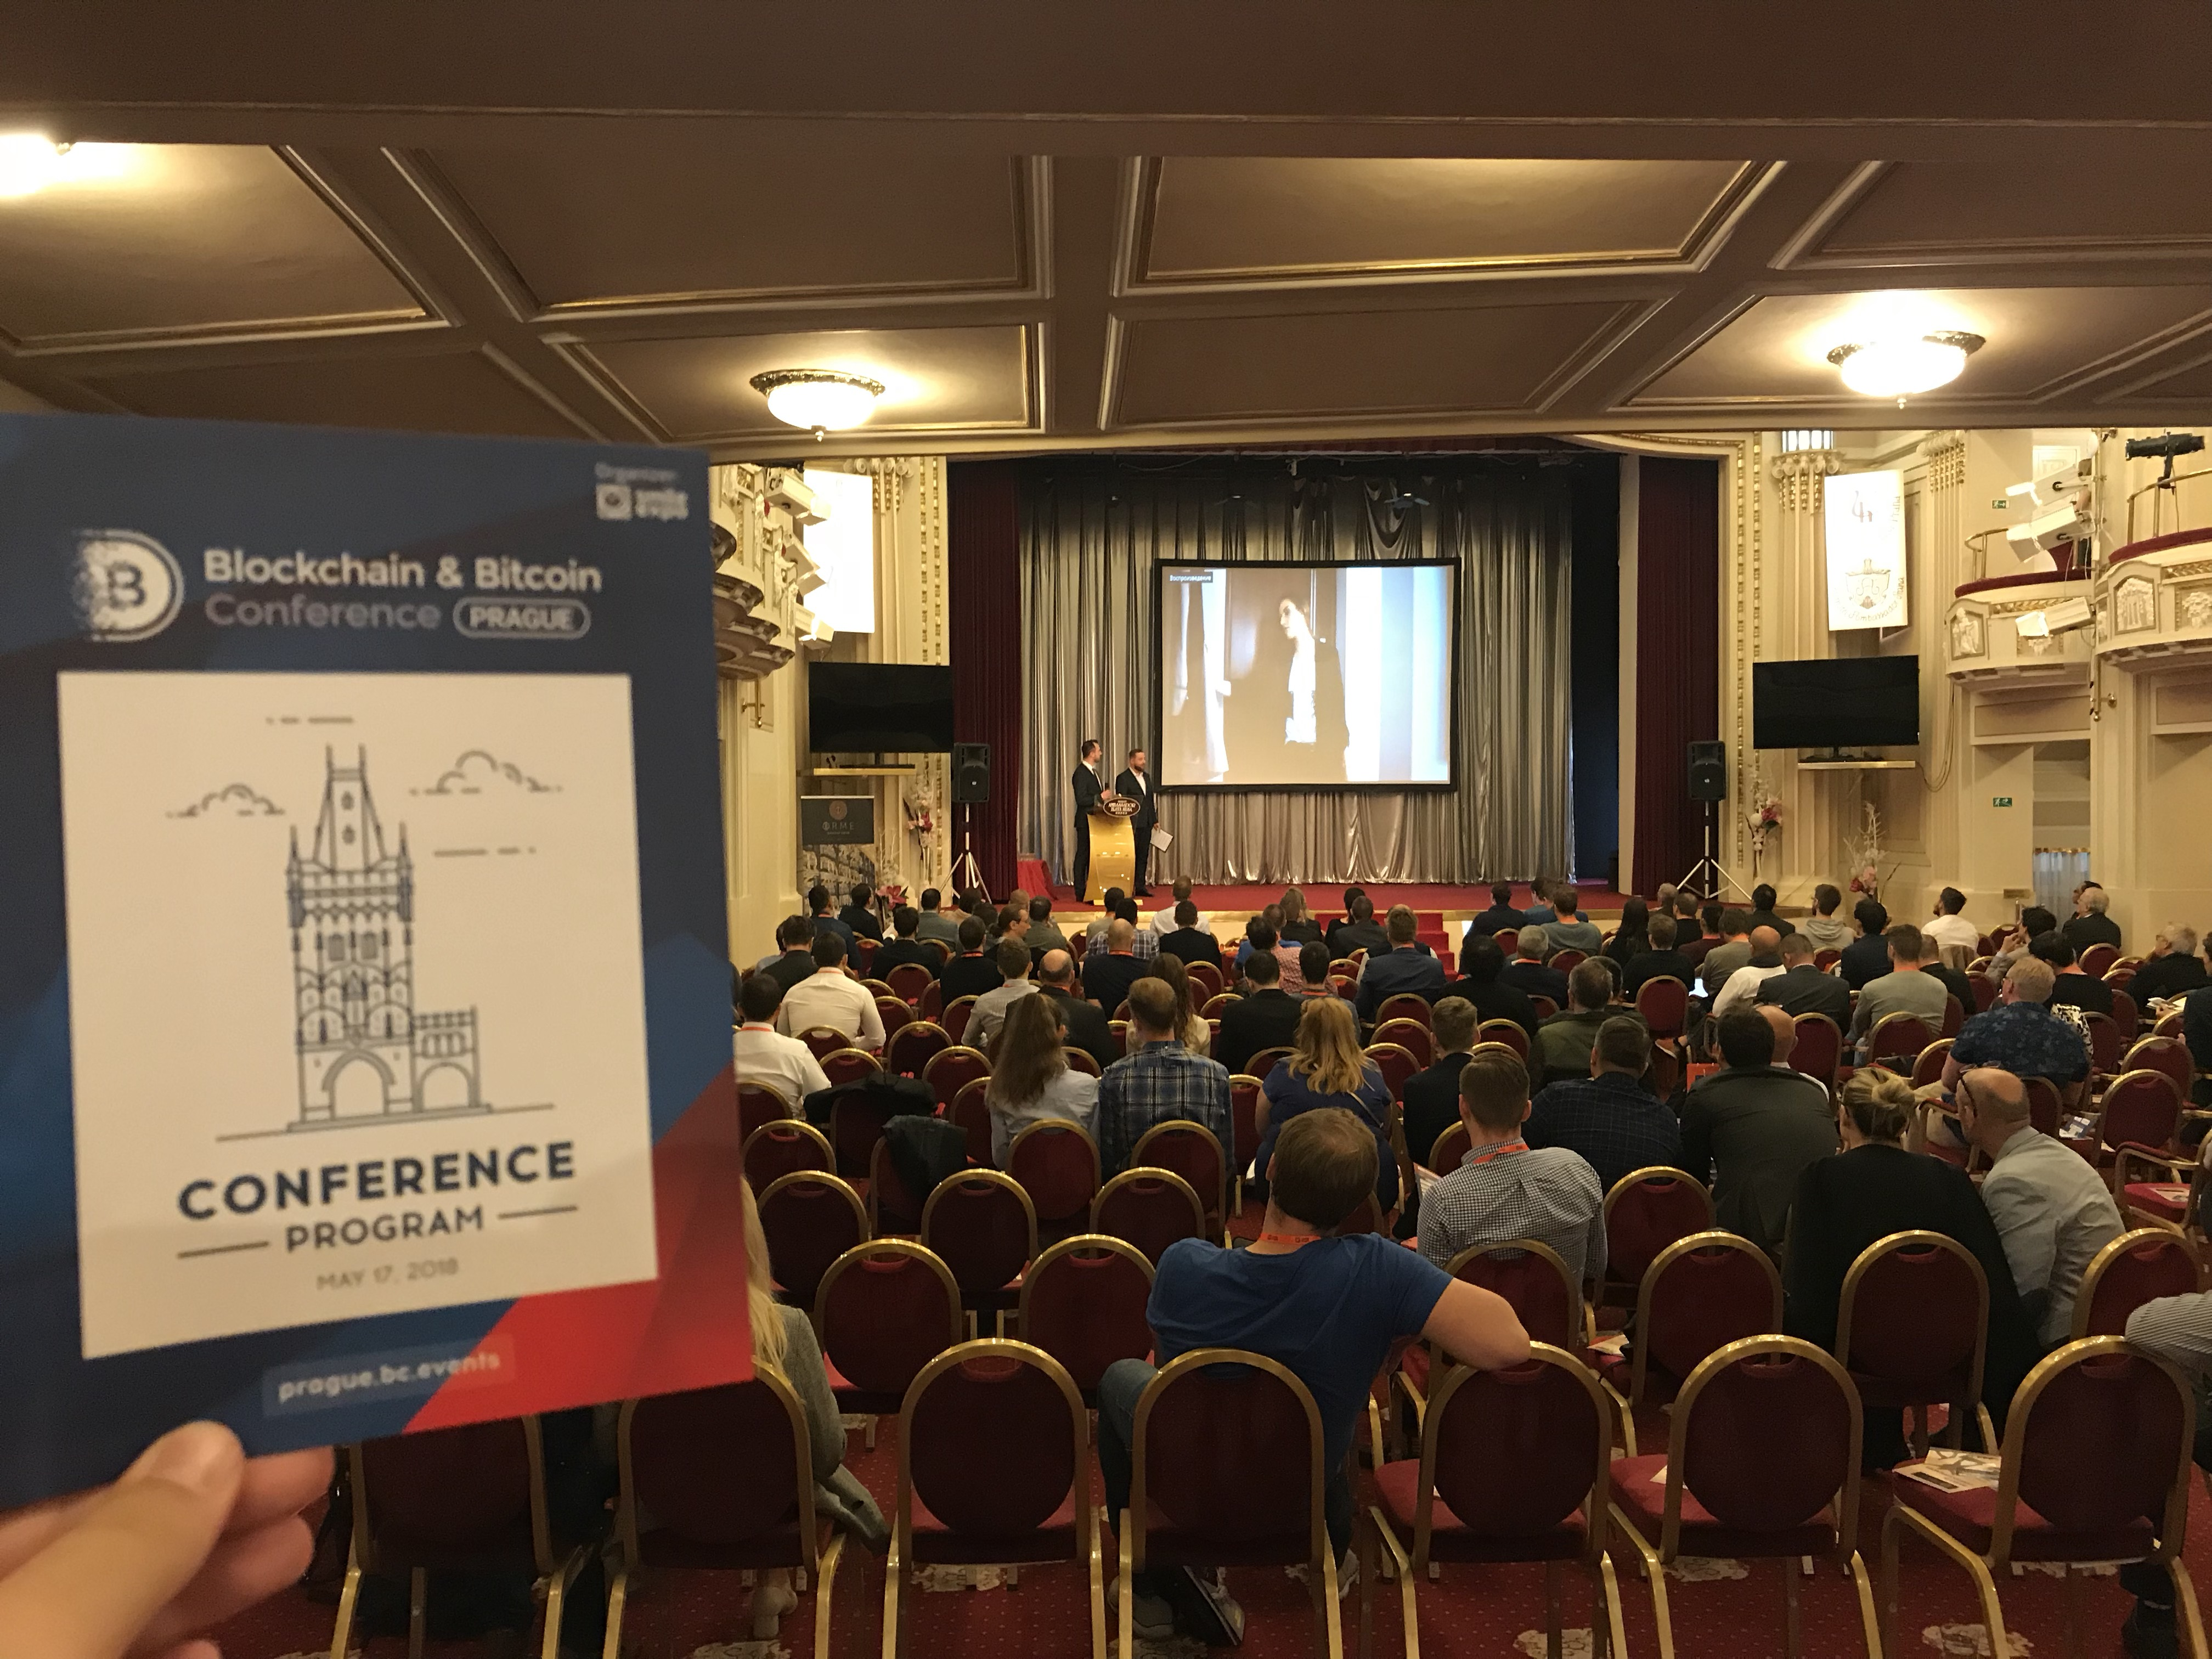 Results of Blockchain & Bitcoin Conference Prague 2018